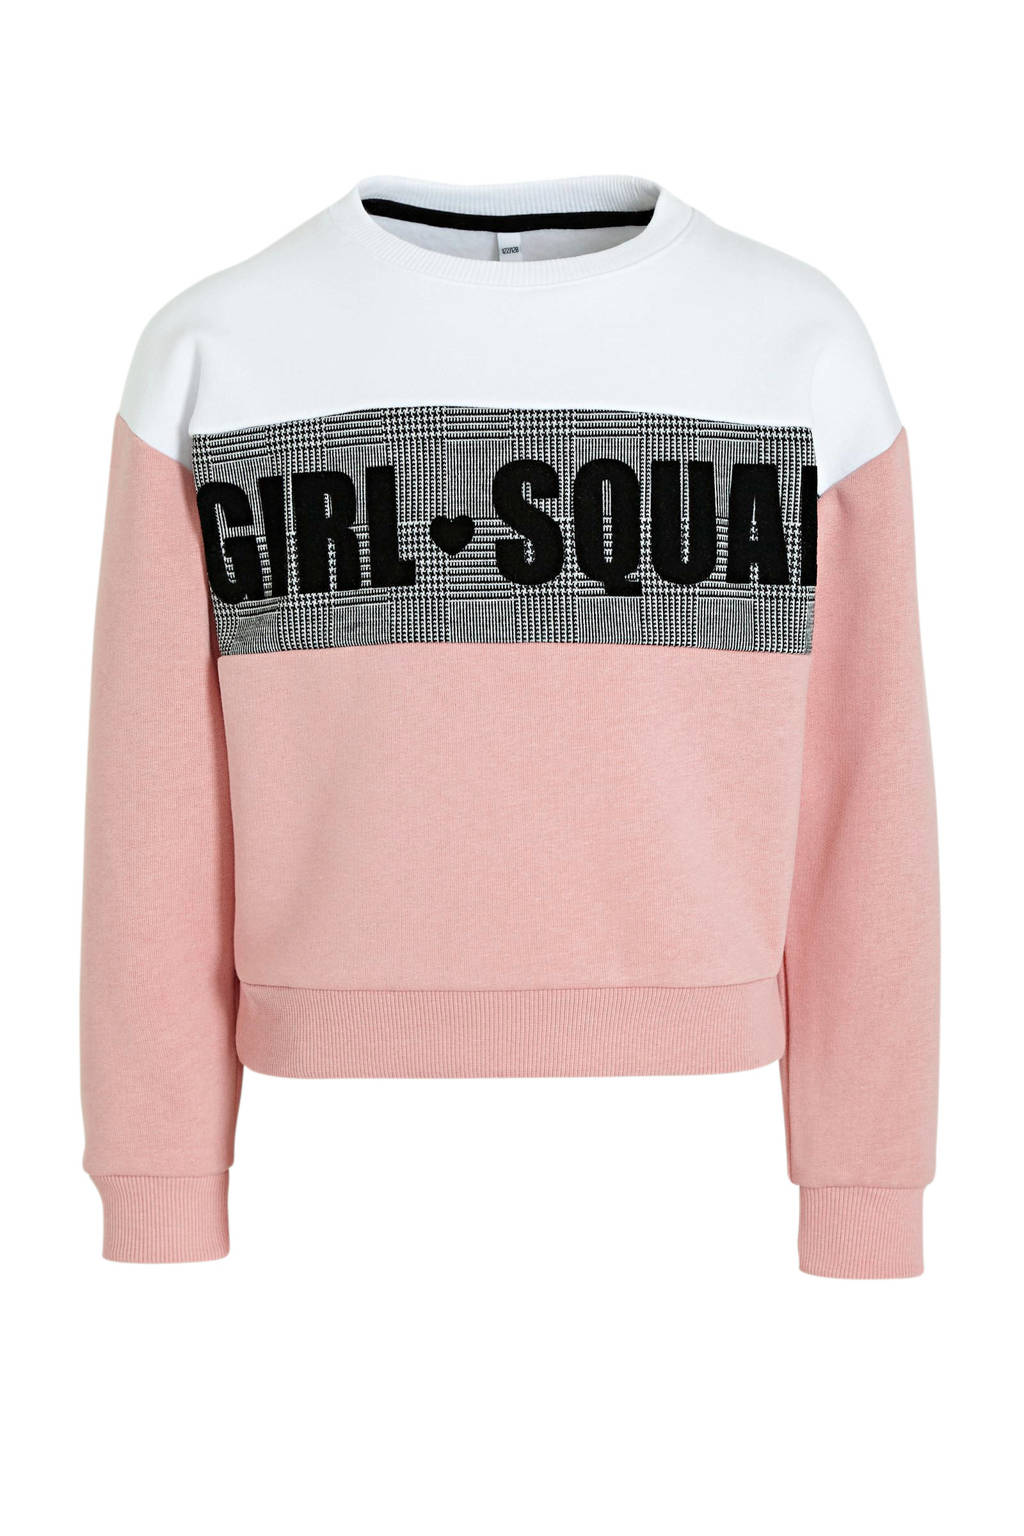 C&A Here & There sweater met tekst roze/wit, Roze/wit